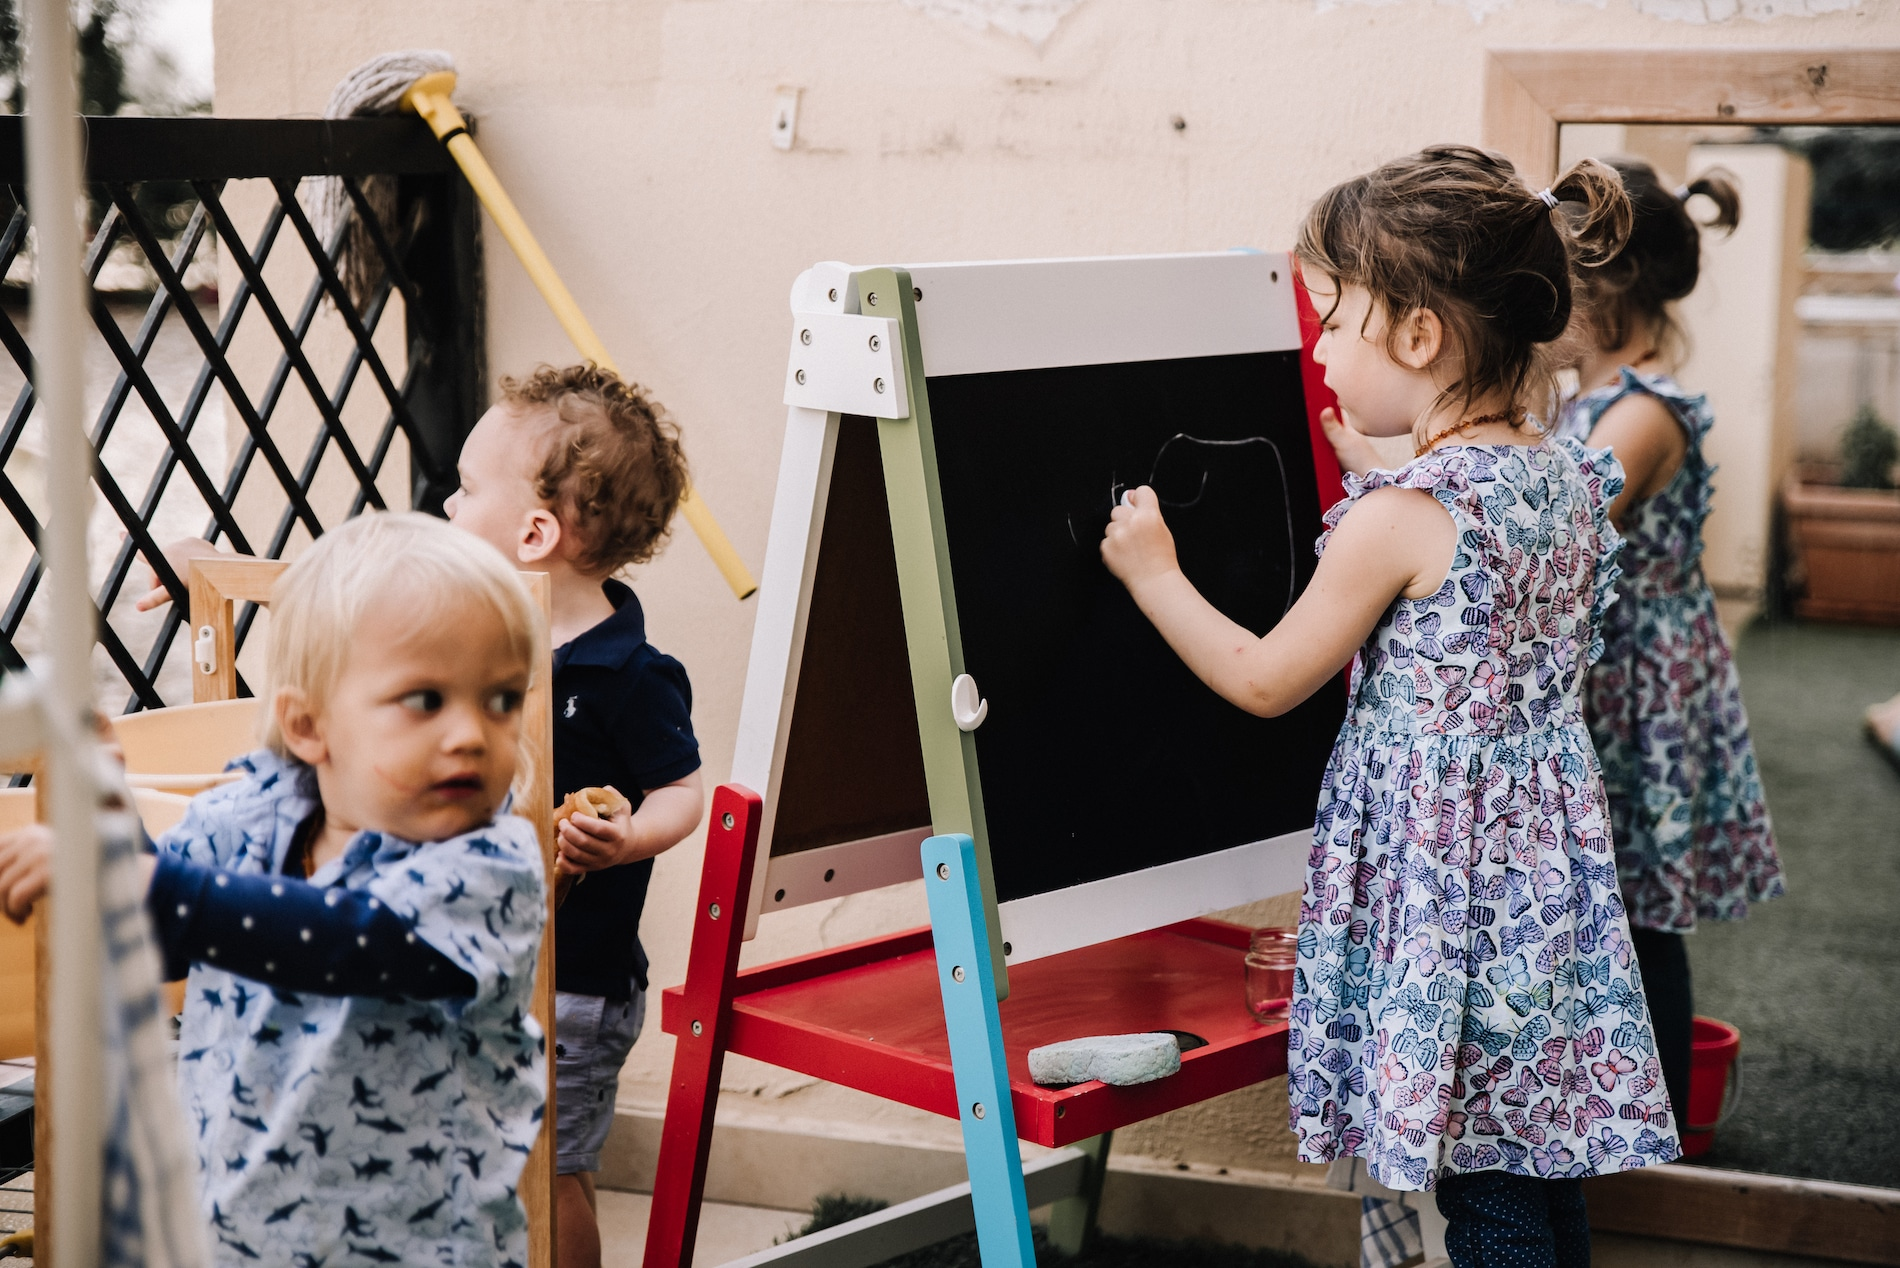 Preschooler drawing on easel with two toddlers close by